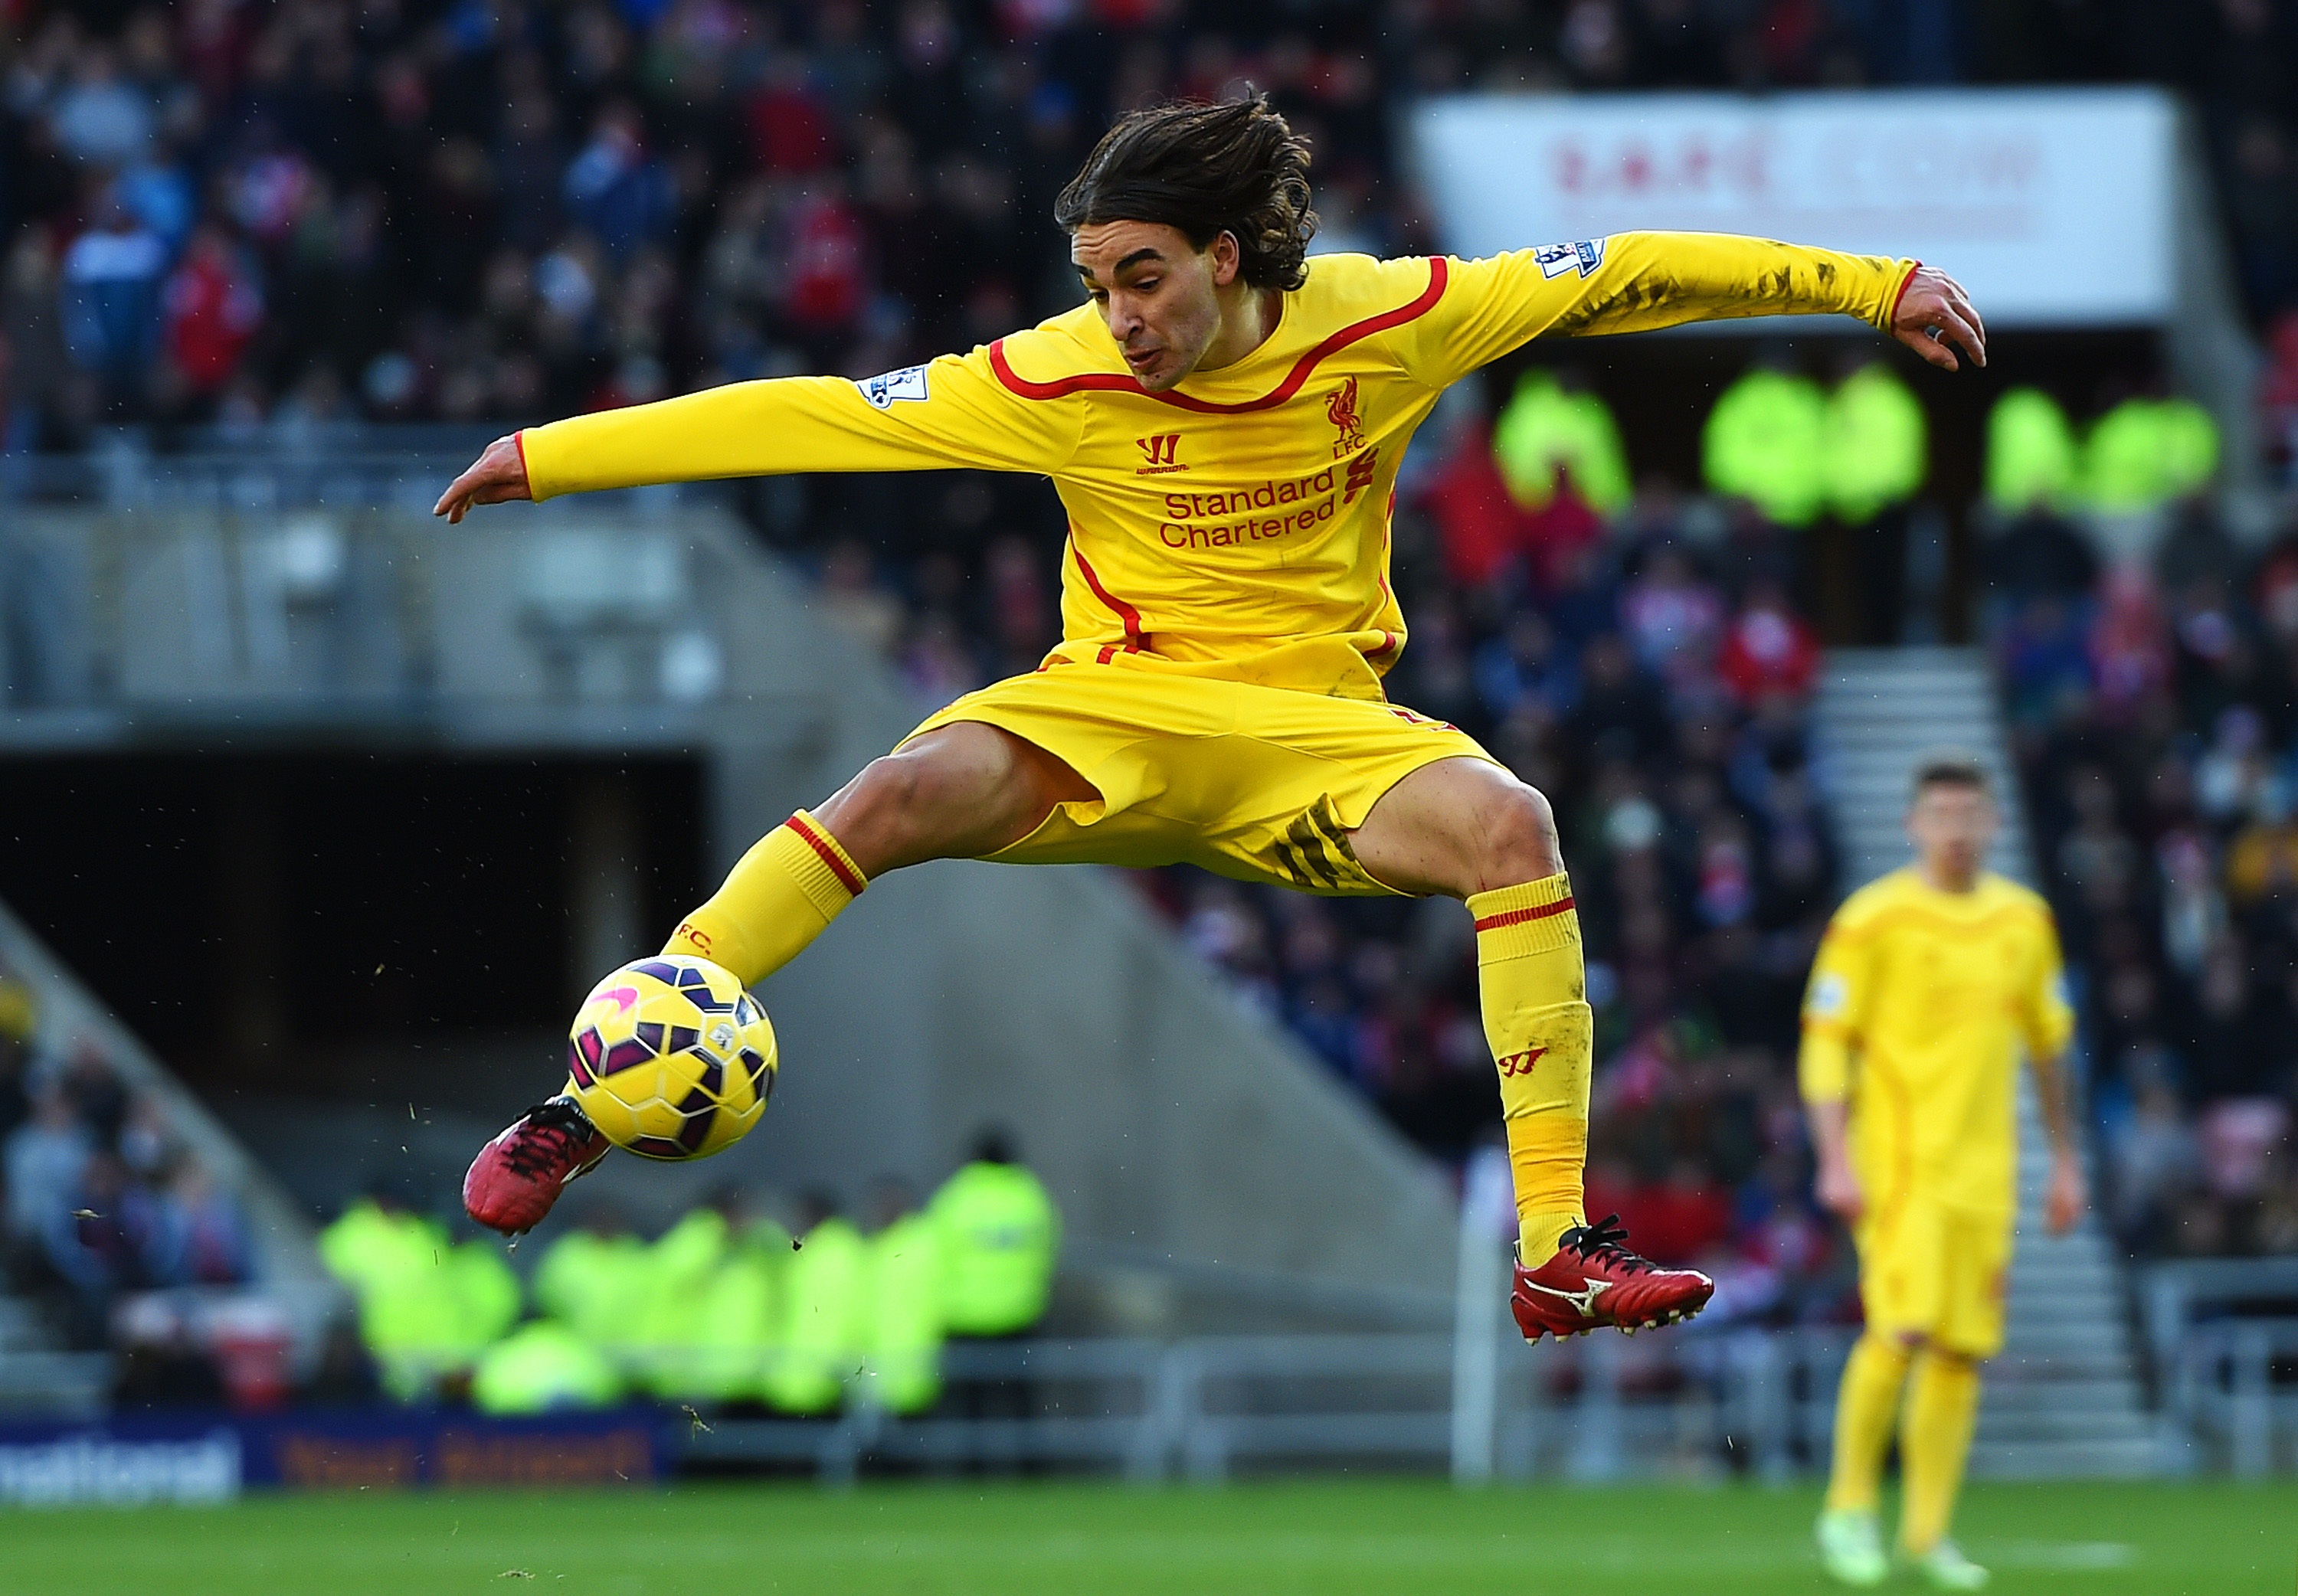 Fulham sign Liverpool winger Lazar Markovic